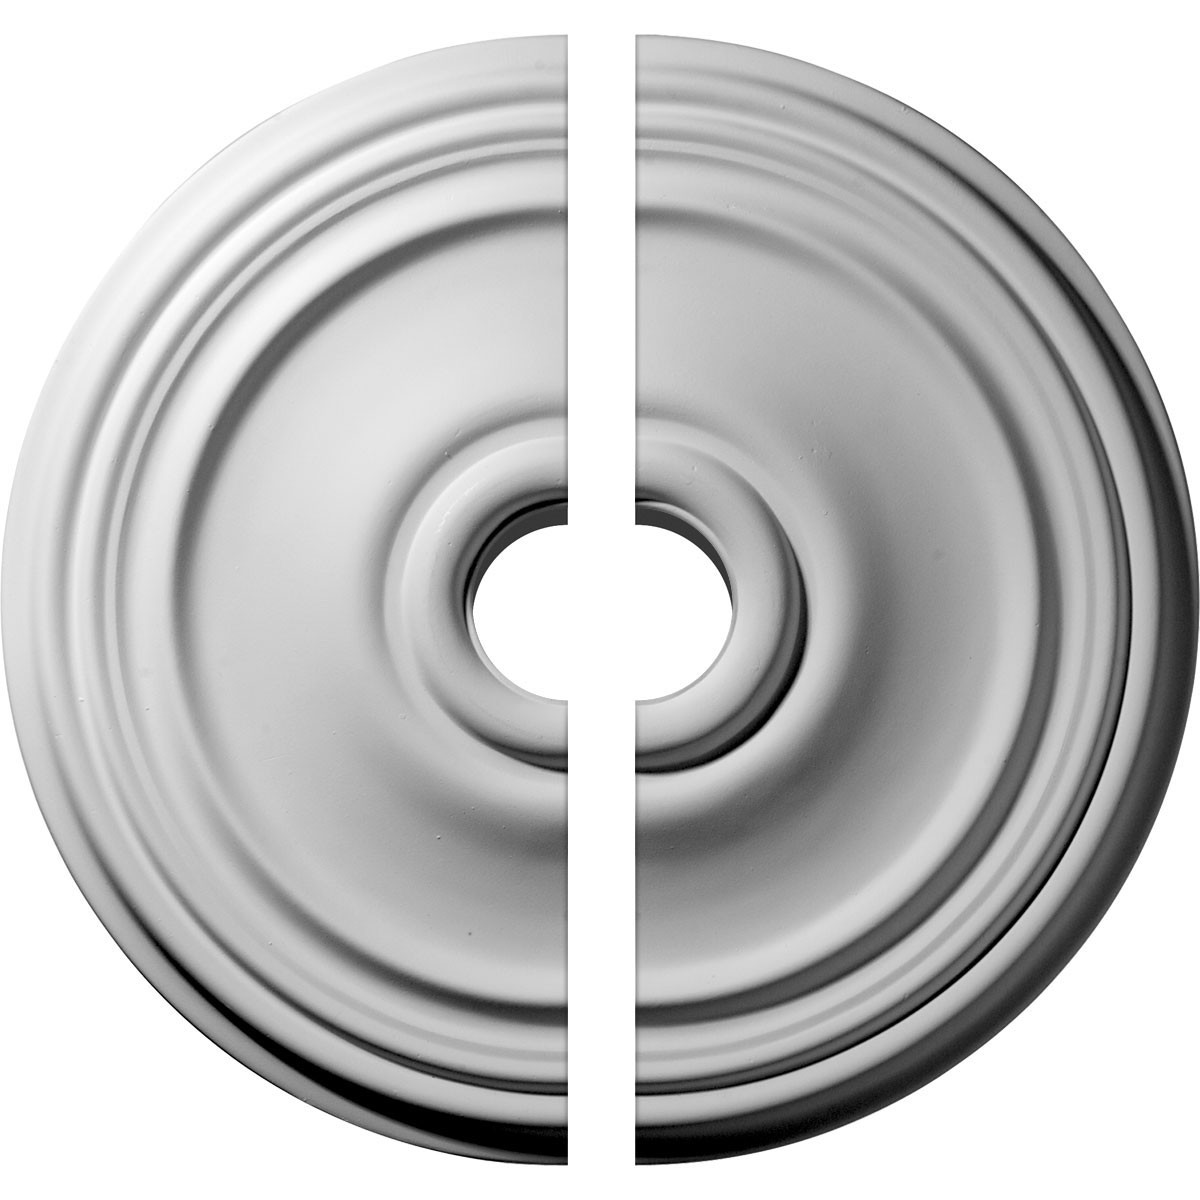 """EM-CM21RE2-03500 - 21""""OD x 3 1/2""""ID x 1 1/4""""P Reece Ceiling Medallion, Two Piece (Fits Canopies up to 6 3/4"""")"""